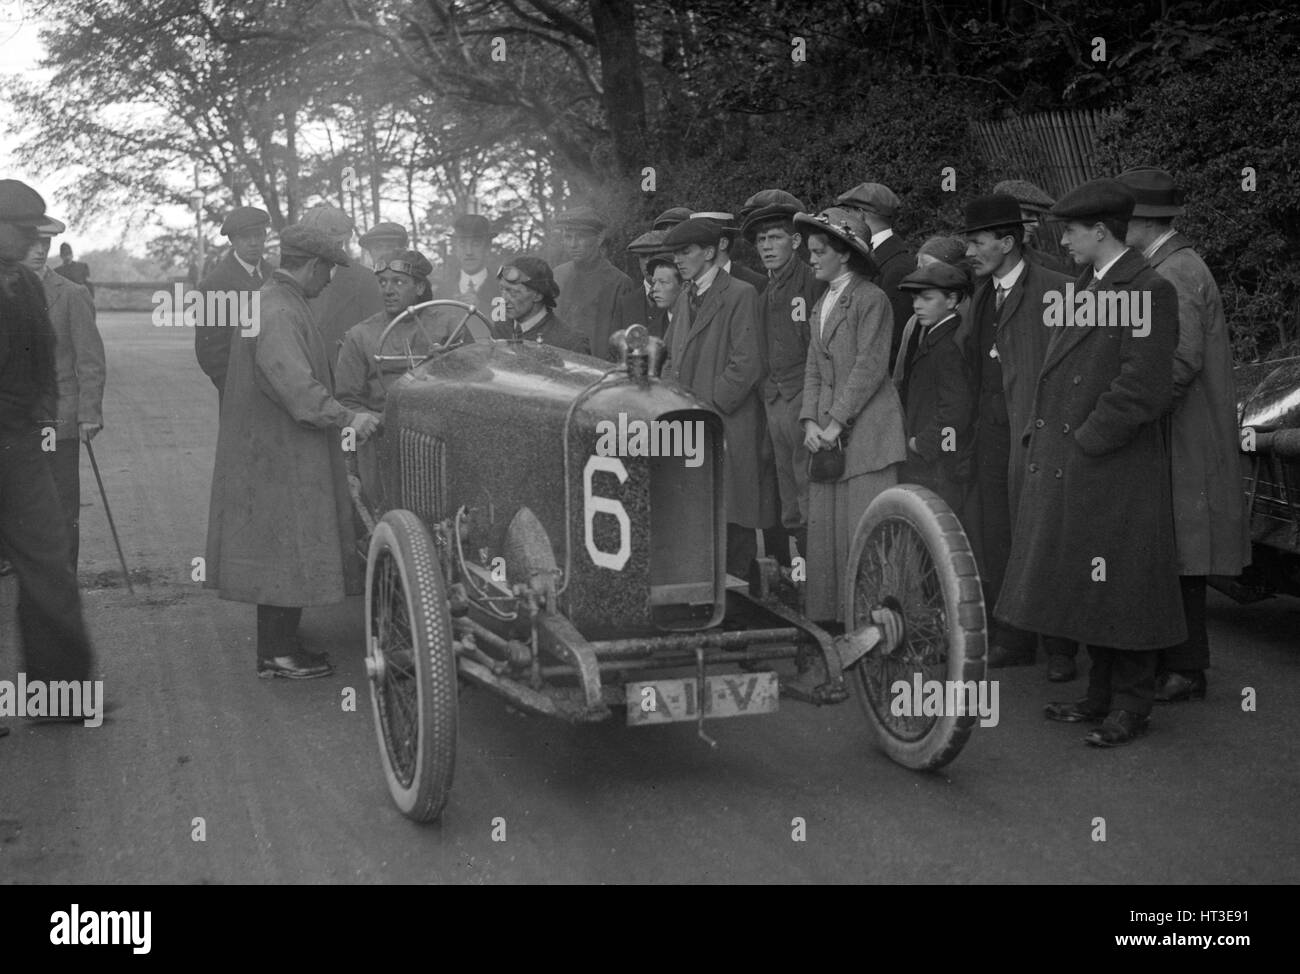 AJ Hancock's 3308 cc Vauxhall at the RAC Isle of Man TT race, 10 June 1914. Artist: Bill Brunell. Stock Photo